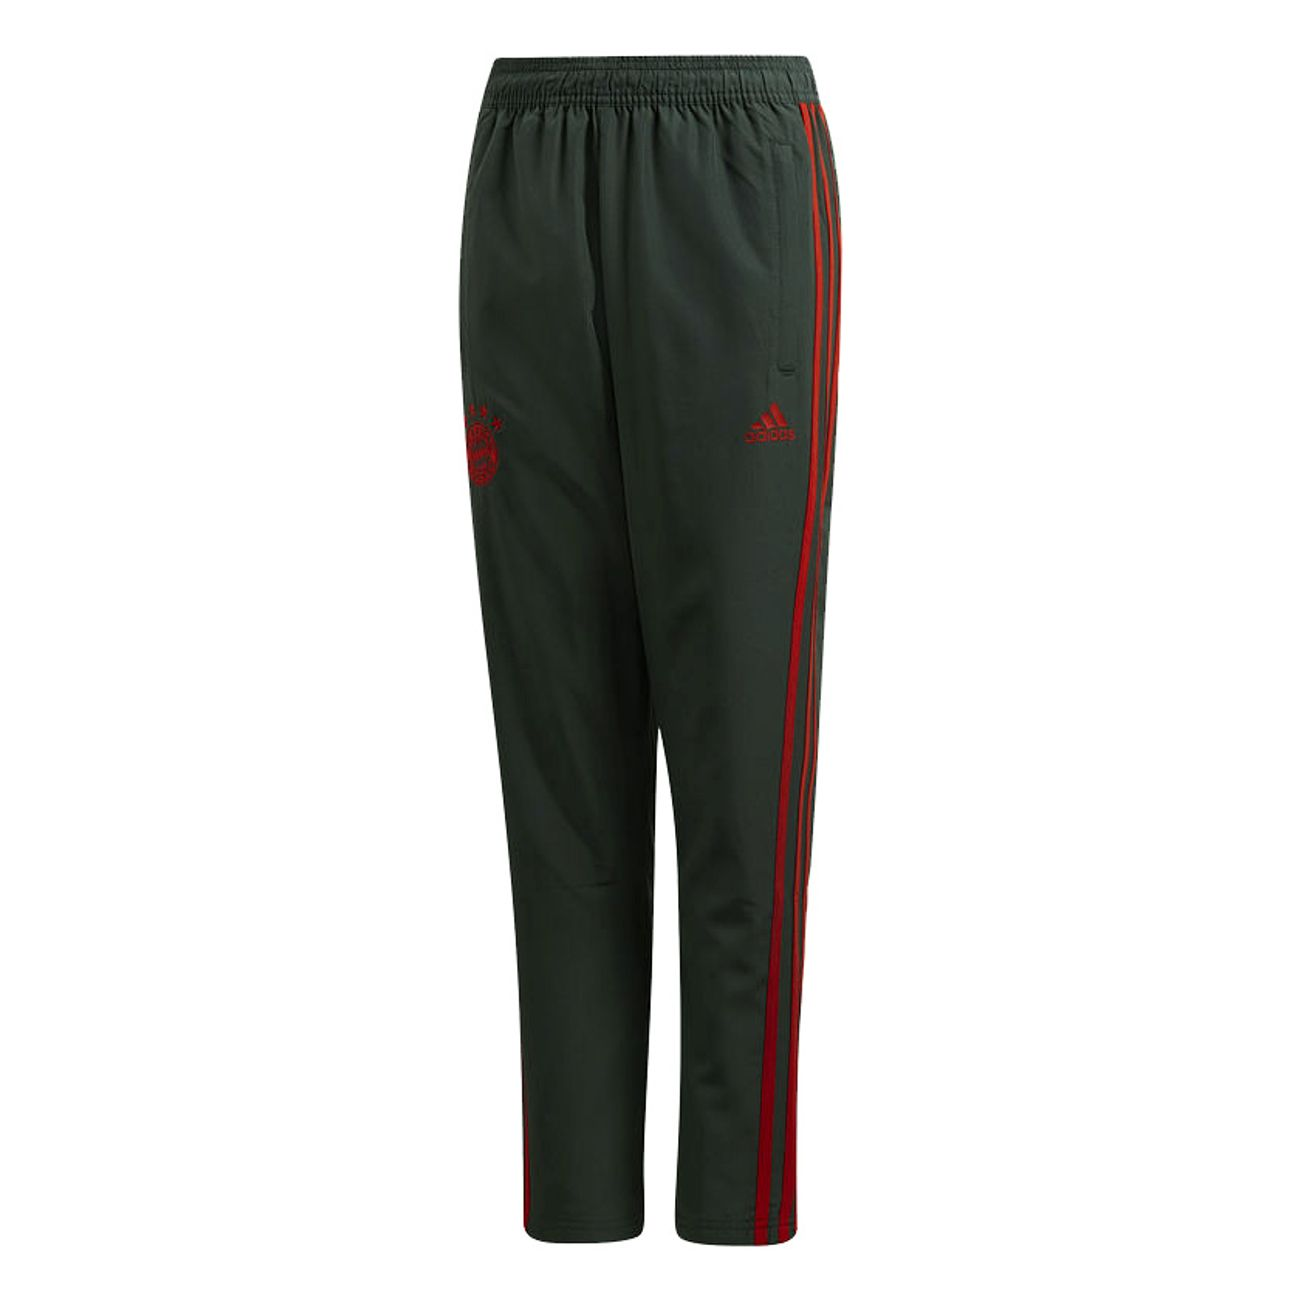 Football garçon ADIDAS PERFORMANCE Pantalon de survêtement Adidas Performance Bayern Munich Woven Pant Junior 18/19